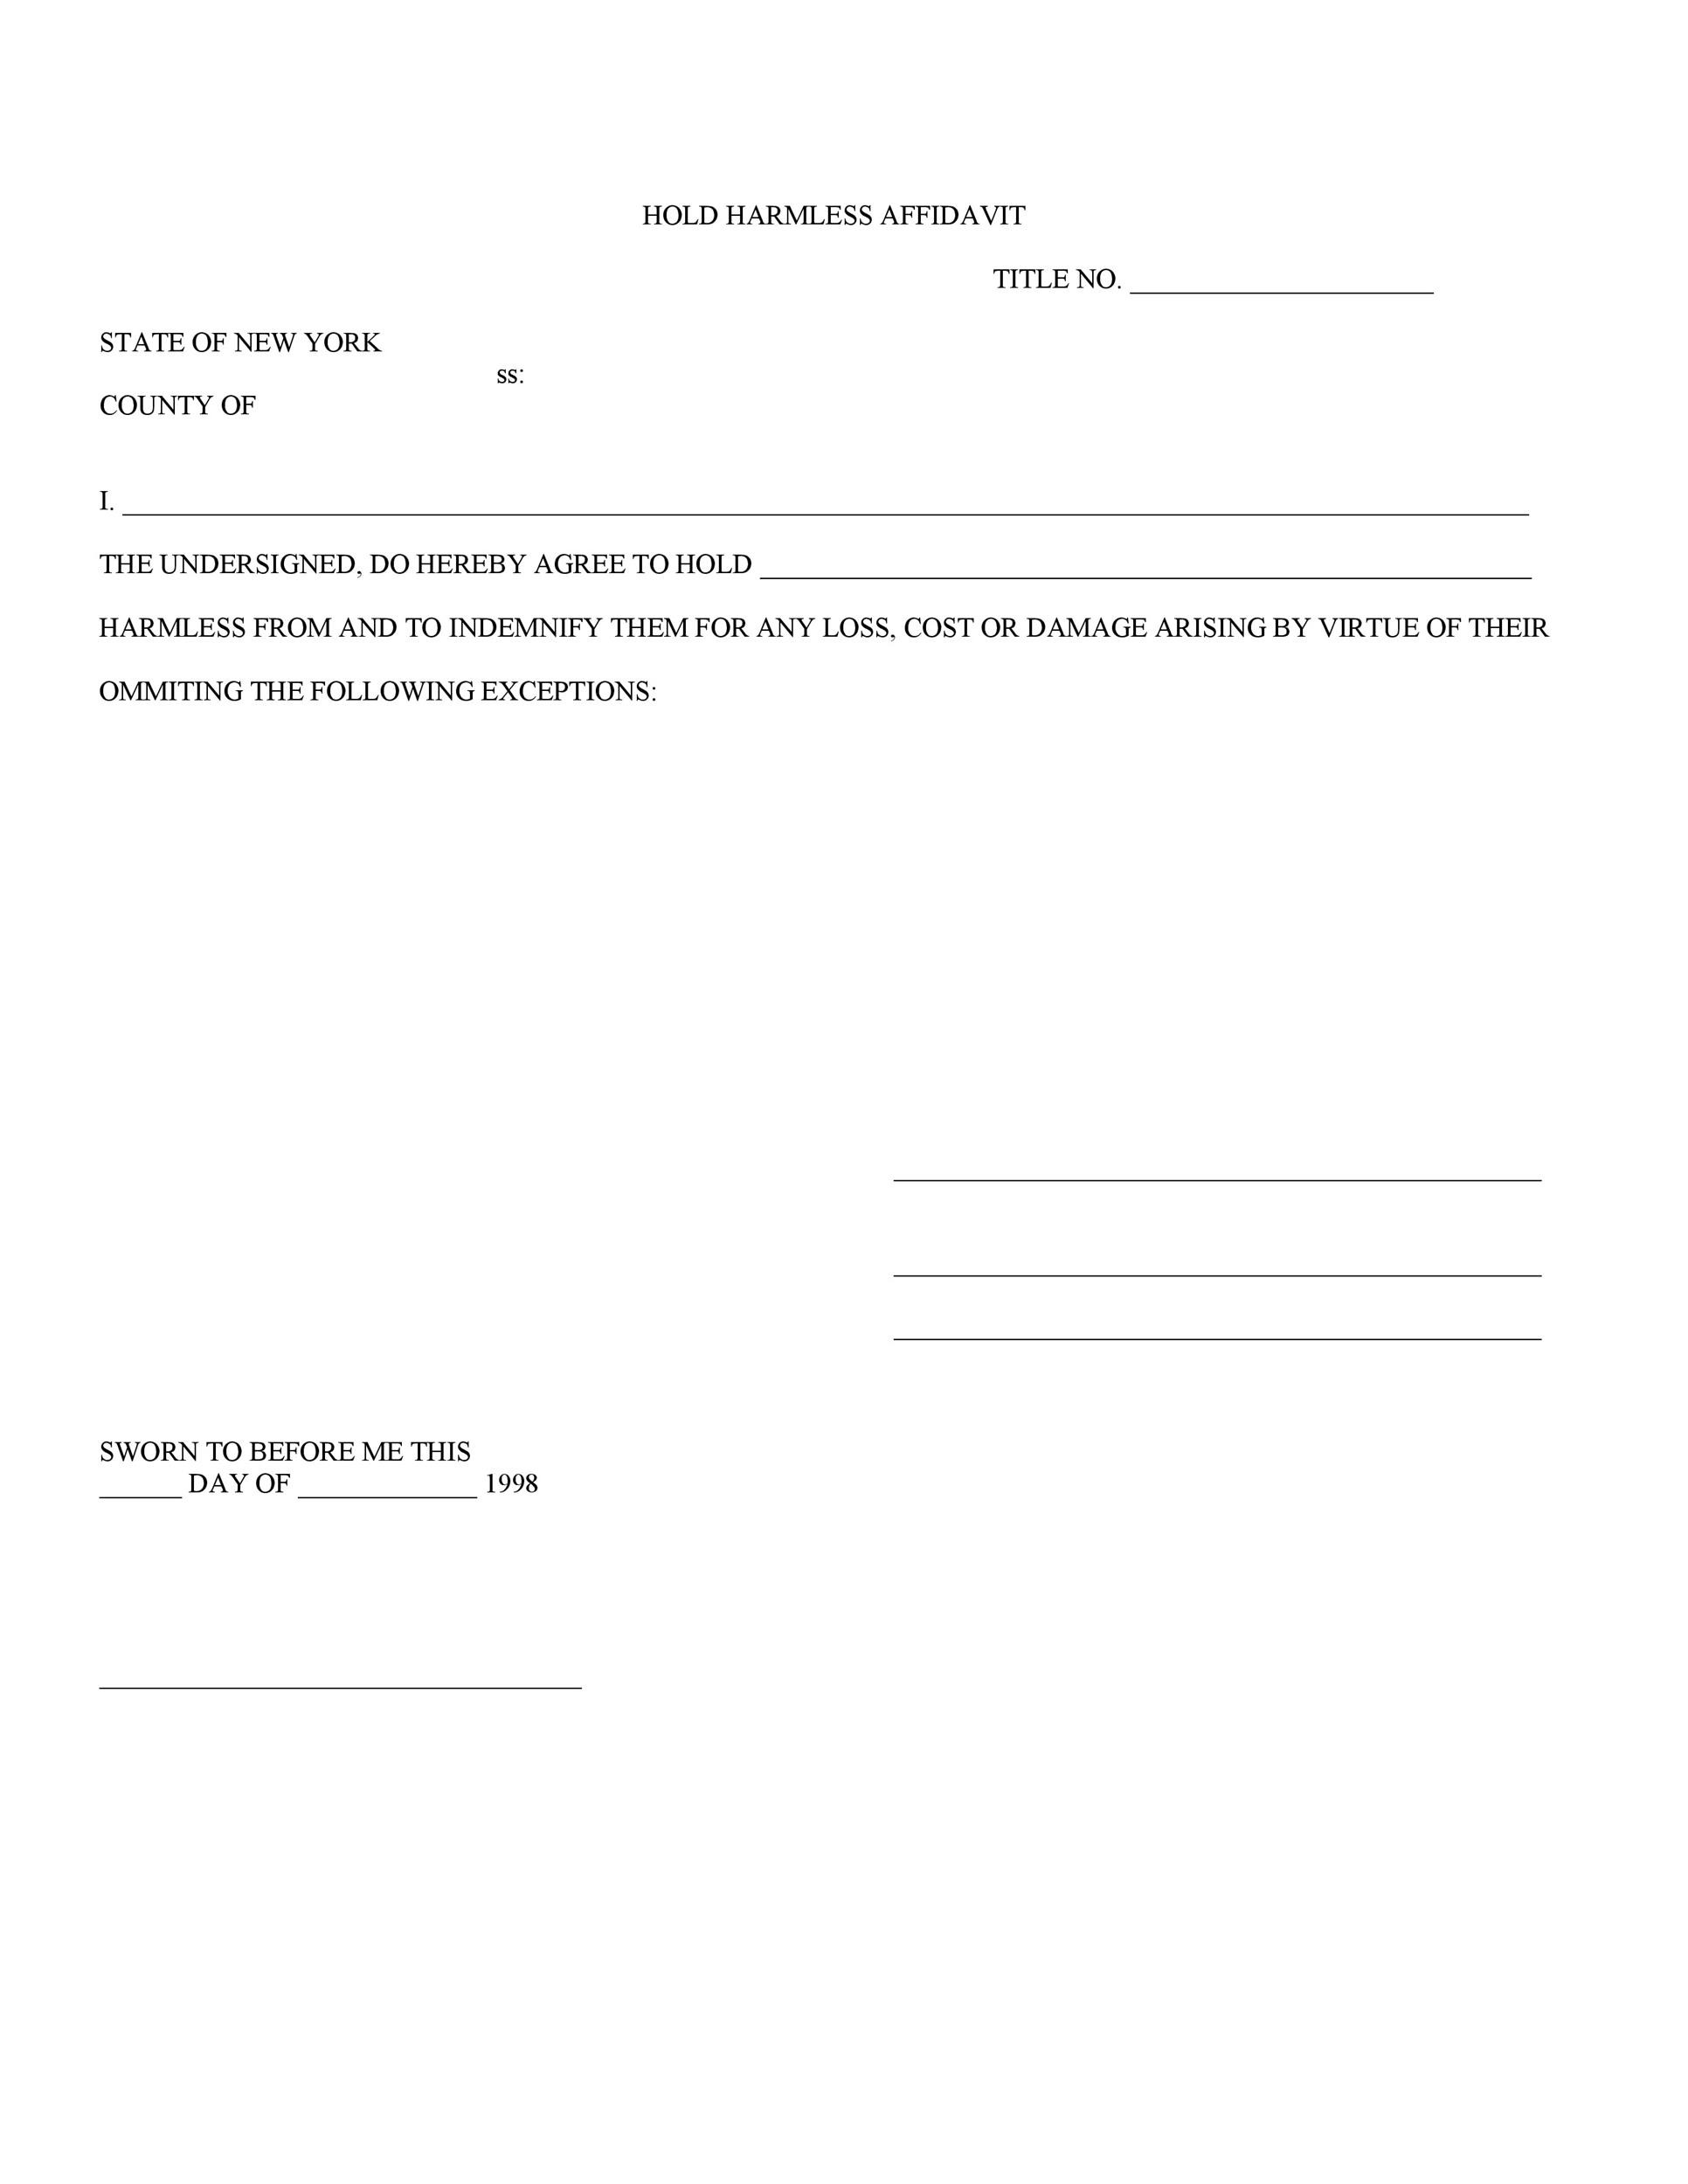 Free Hold Harmless Agreement Template 30